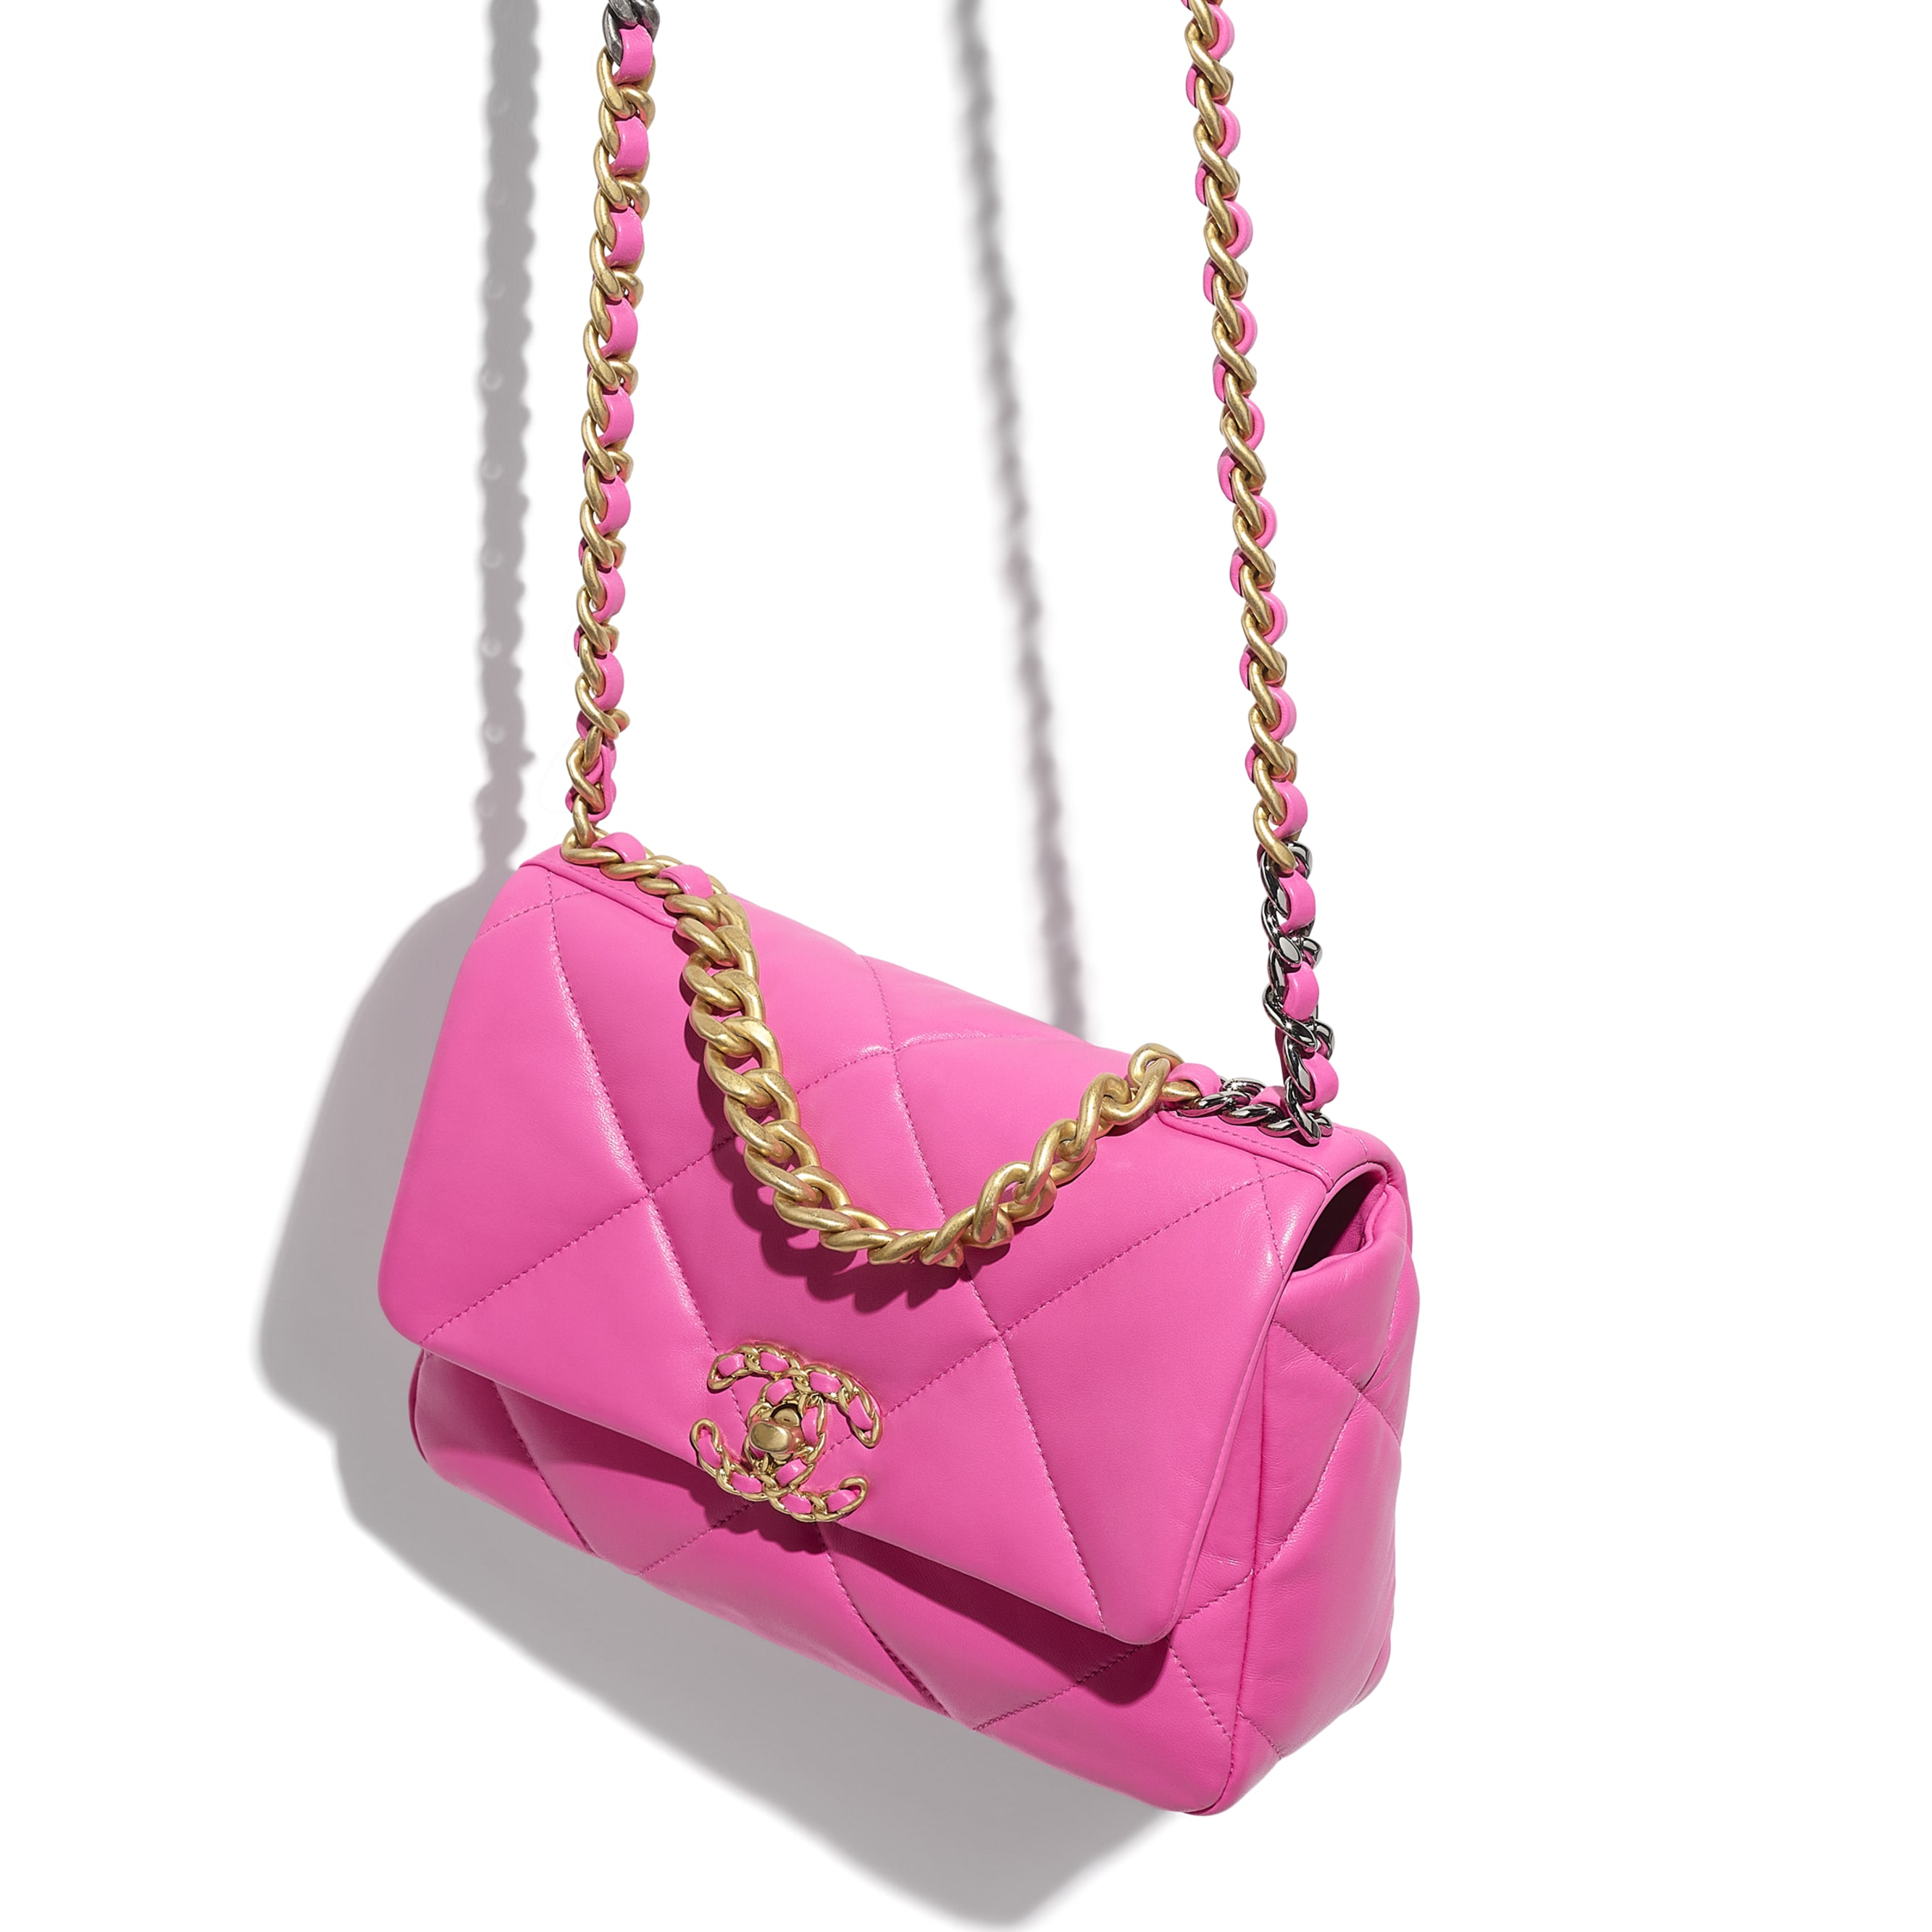 CHANEL 19 Handbag - Neon Pink - Shiny Lambskin, Gold-Tone, Silver-Tone & Ruthenium-Finish Metal - CHANEL - Extra view - see standard sized version